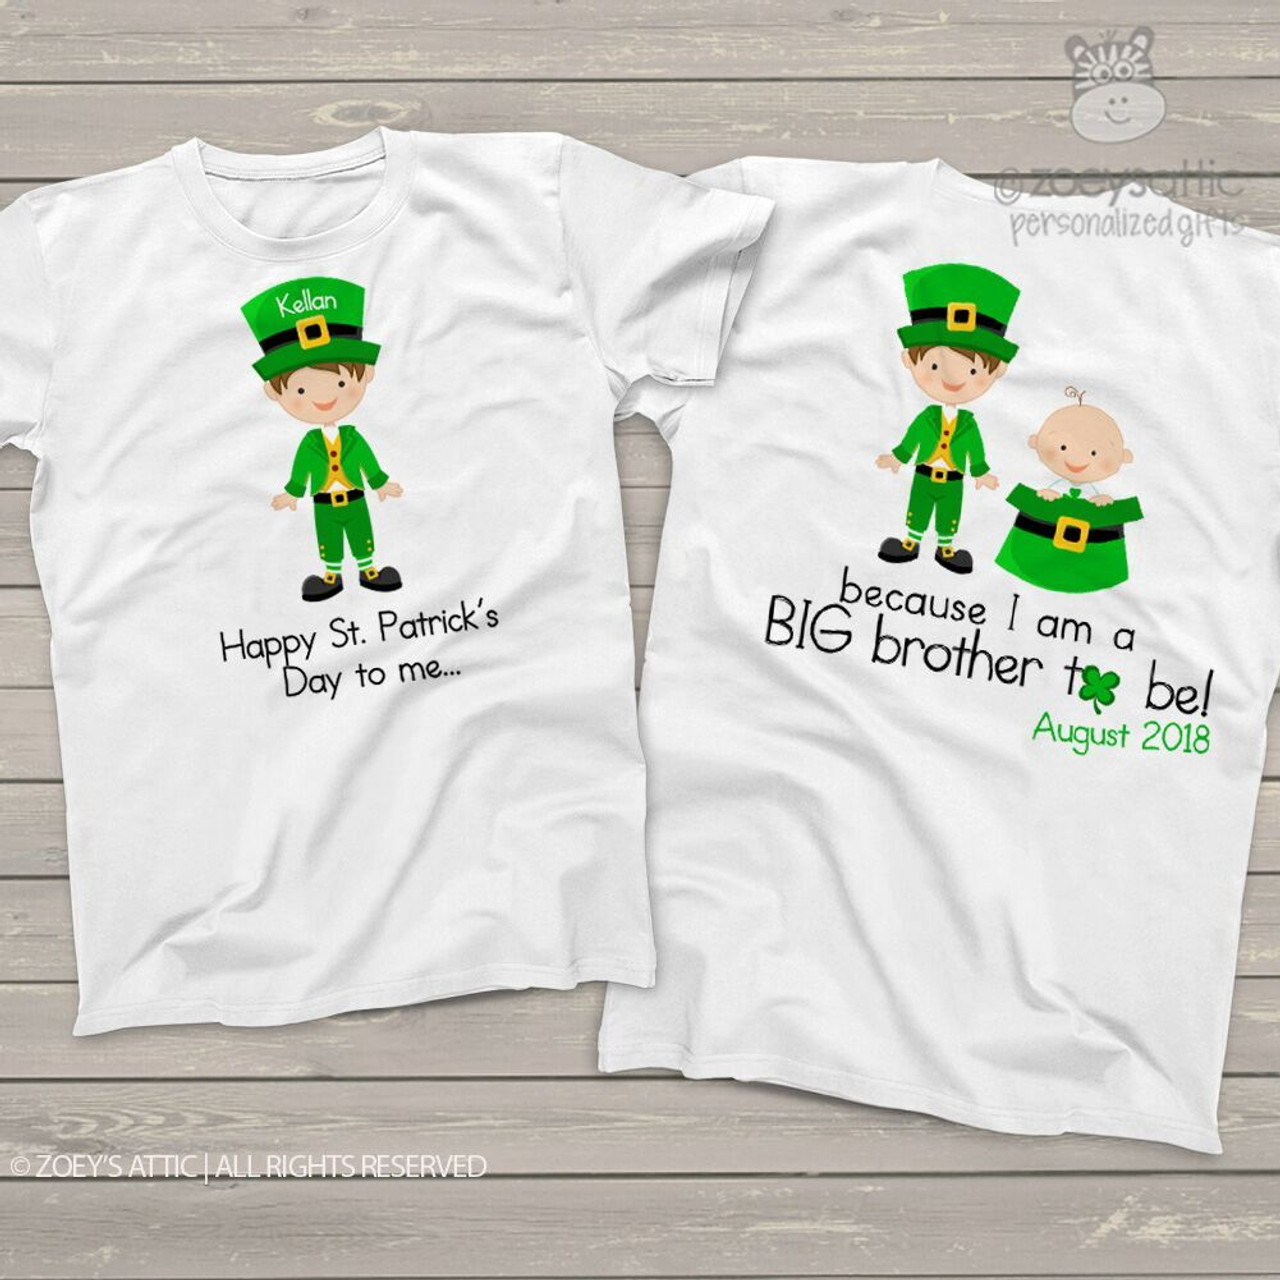 e4e12df4 personalized kids shirt, Irish lad big brother to be St. Patrick's  pregnancy announcement t-shirt